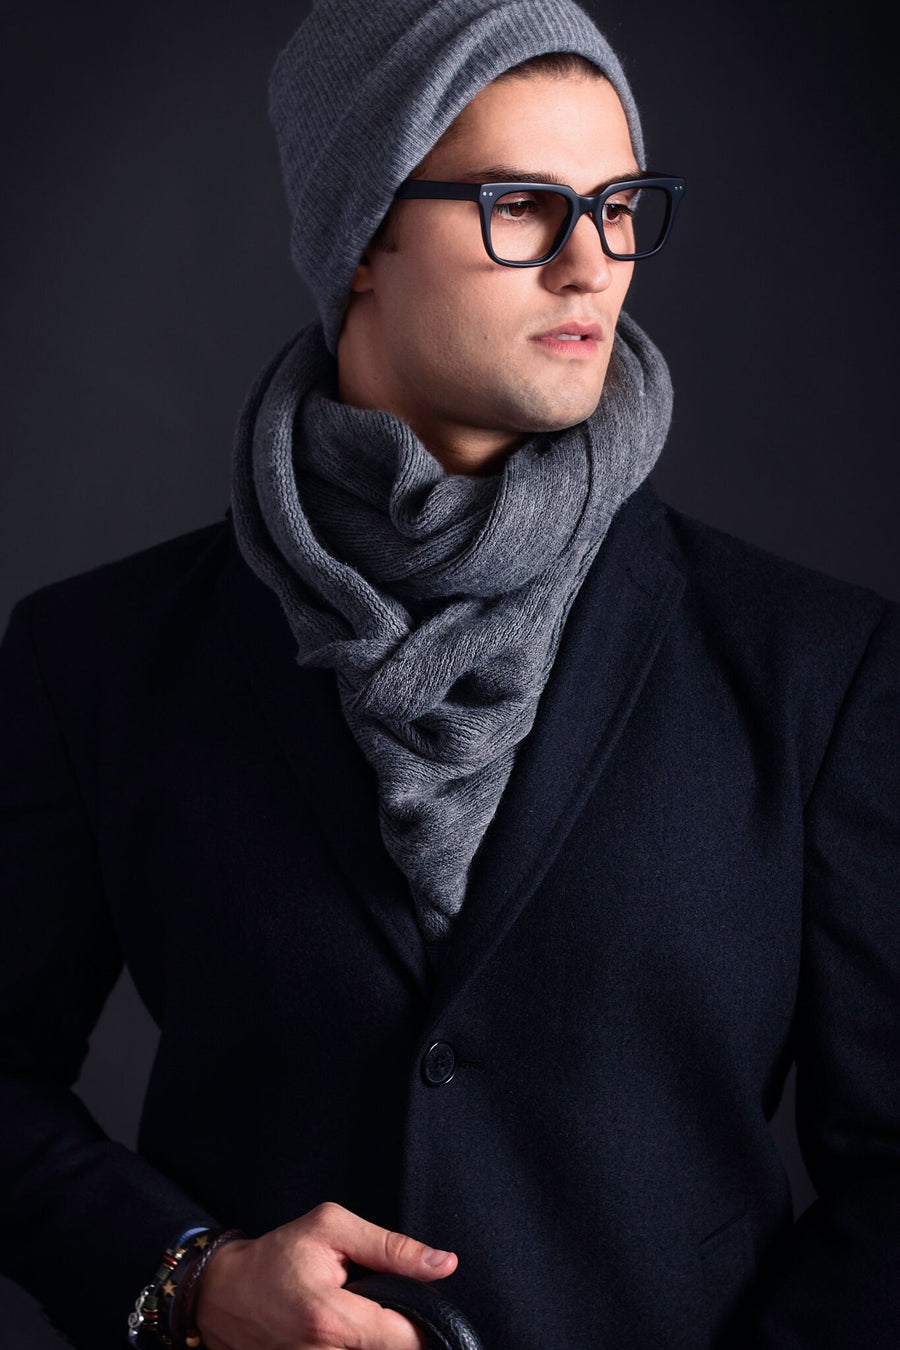 James Derby Italia Scarf in Black / Brown